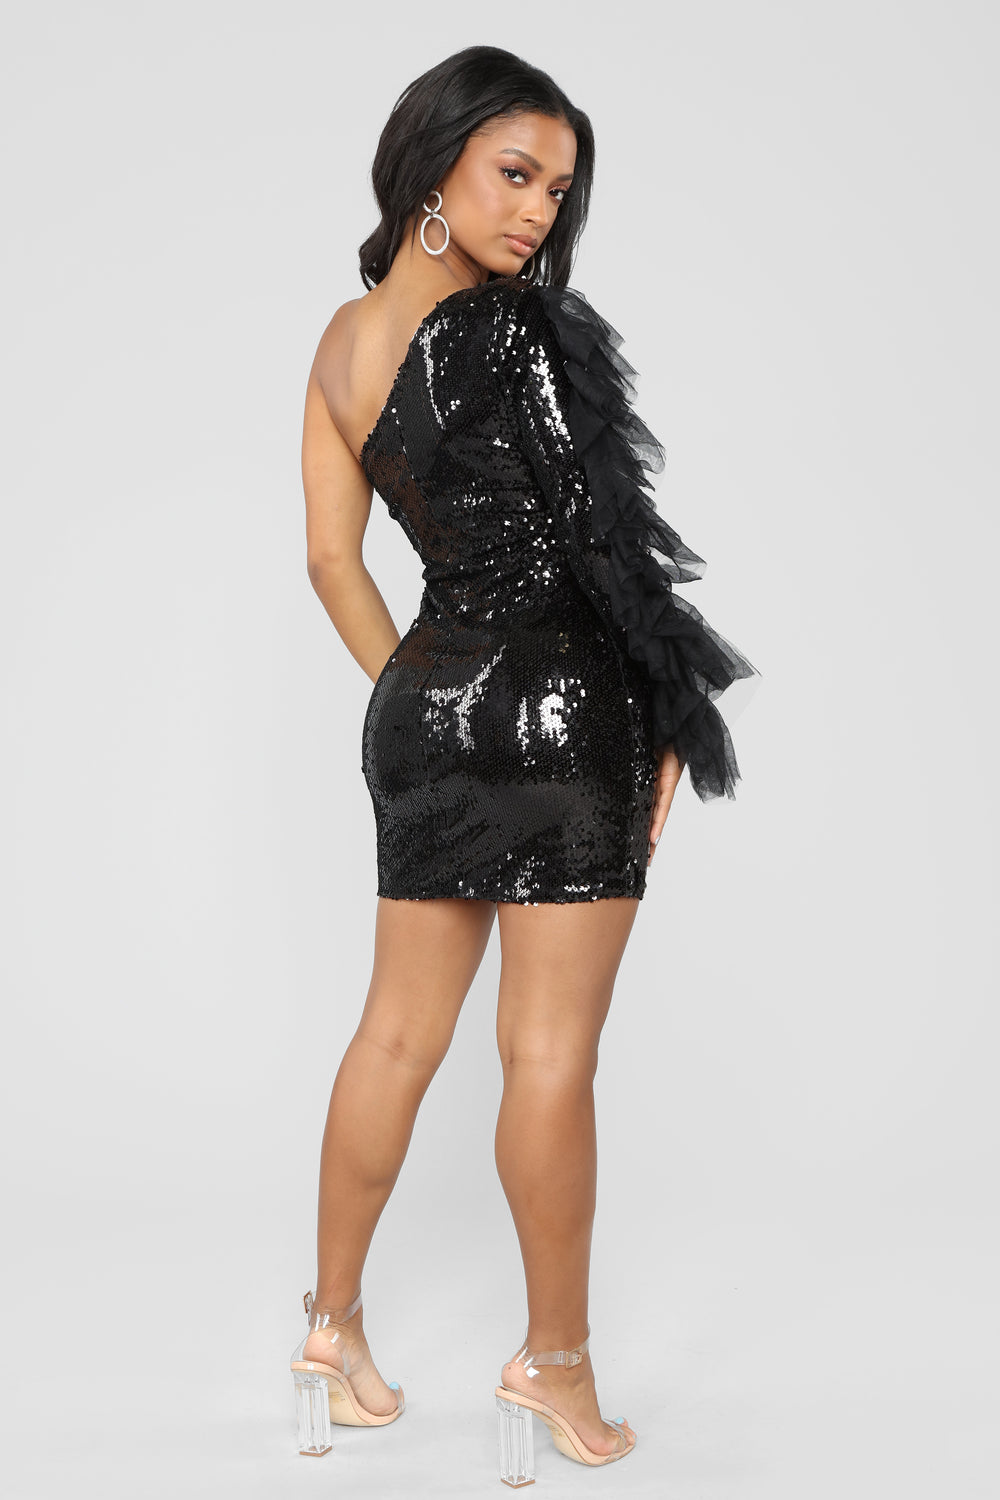 Always A Diva Sequin Dress - Black